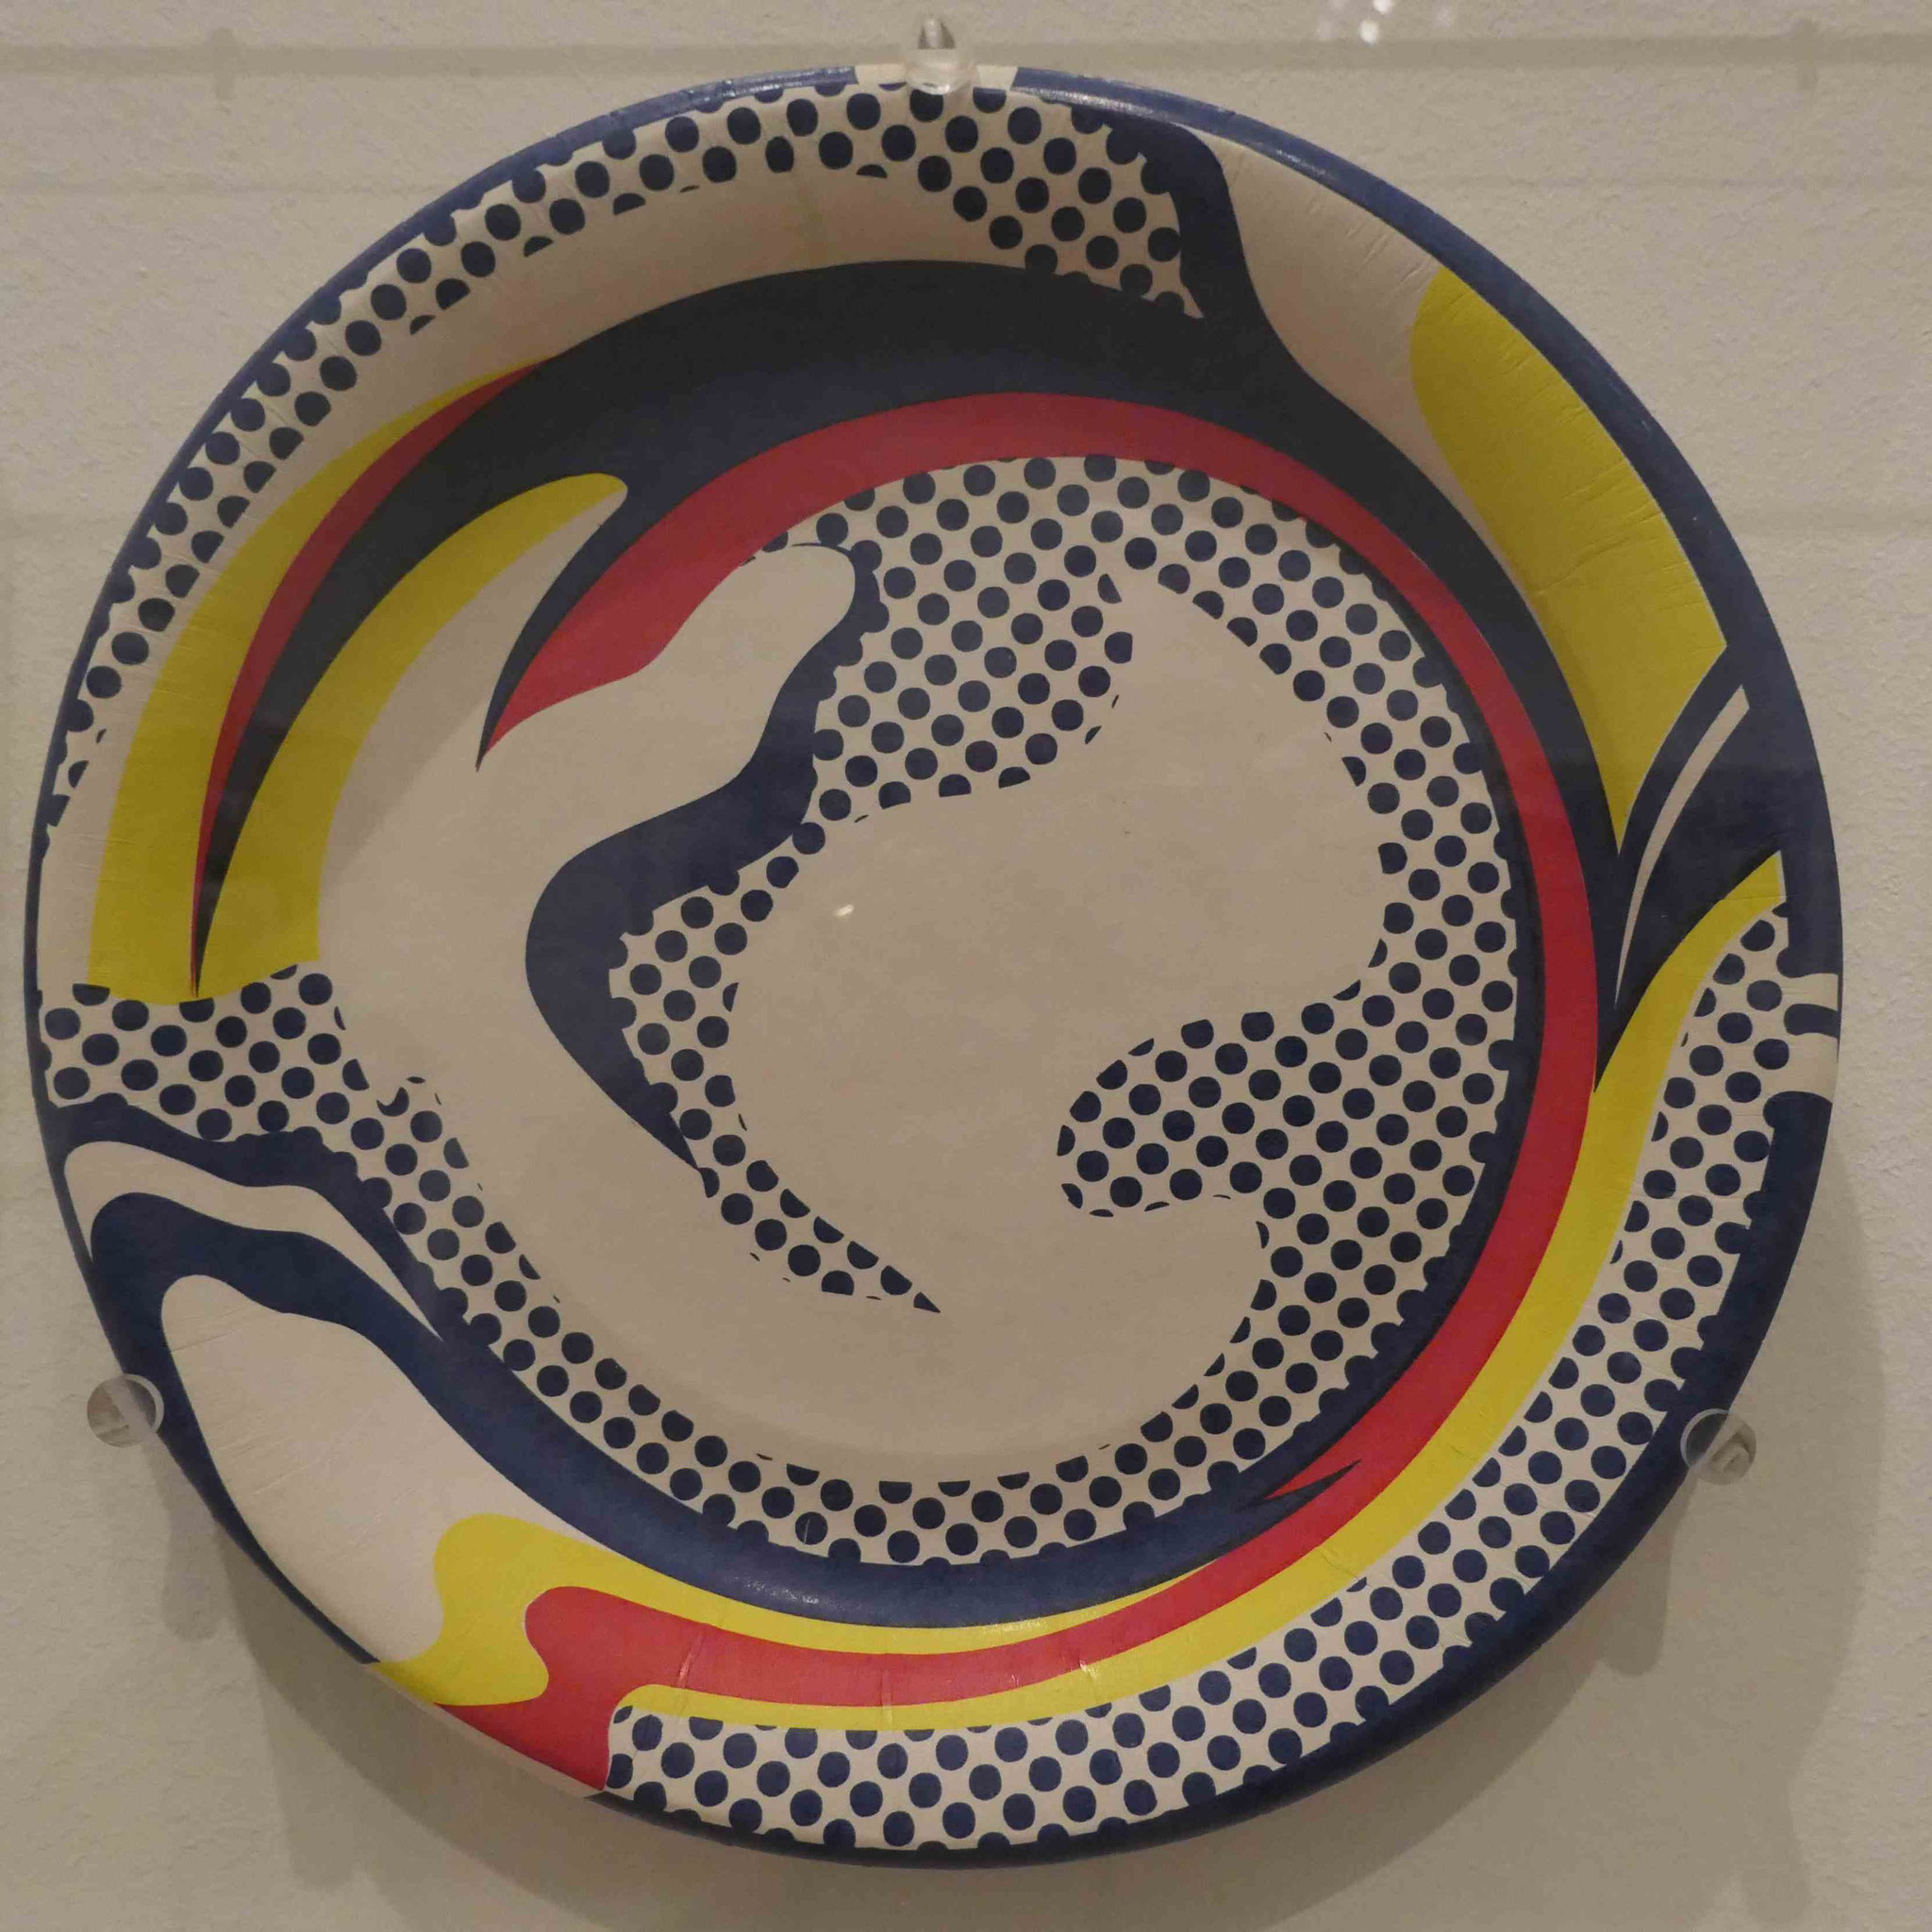 Roy Lichtenstein, Teller, Siebdruck auf Pappe, 1969, Nationalgalerie Berlin